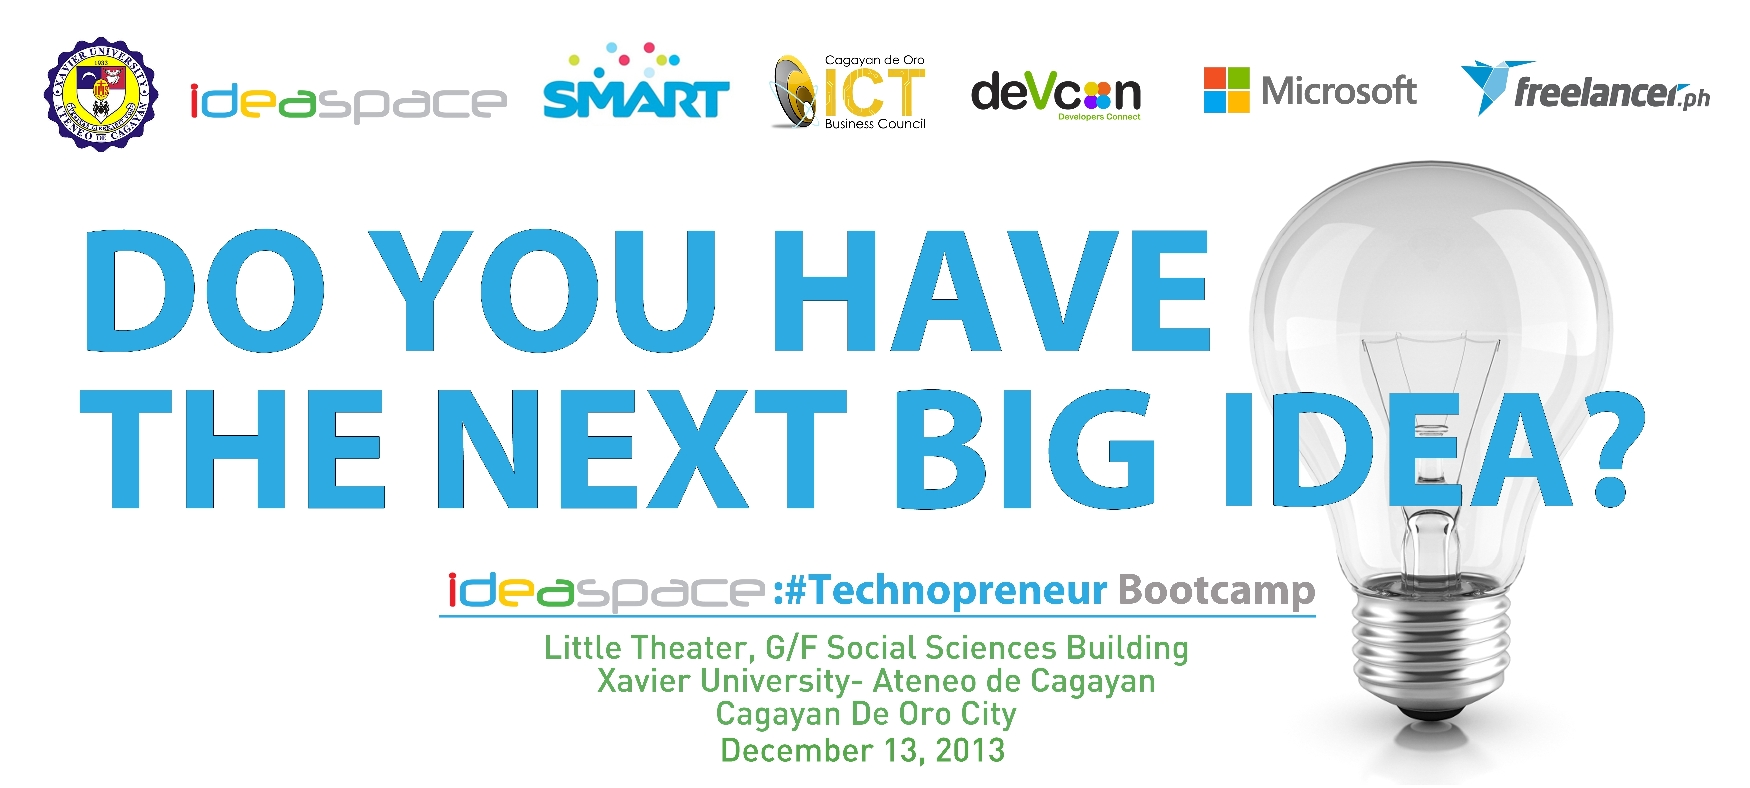 IdeaSpace Brings Technopreneur Boot Camp at Northern Mindanao